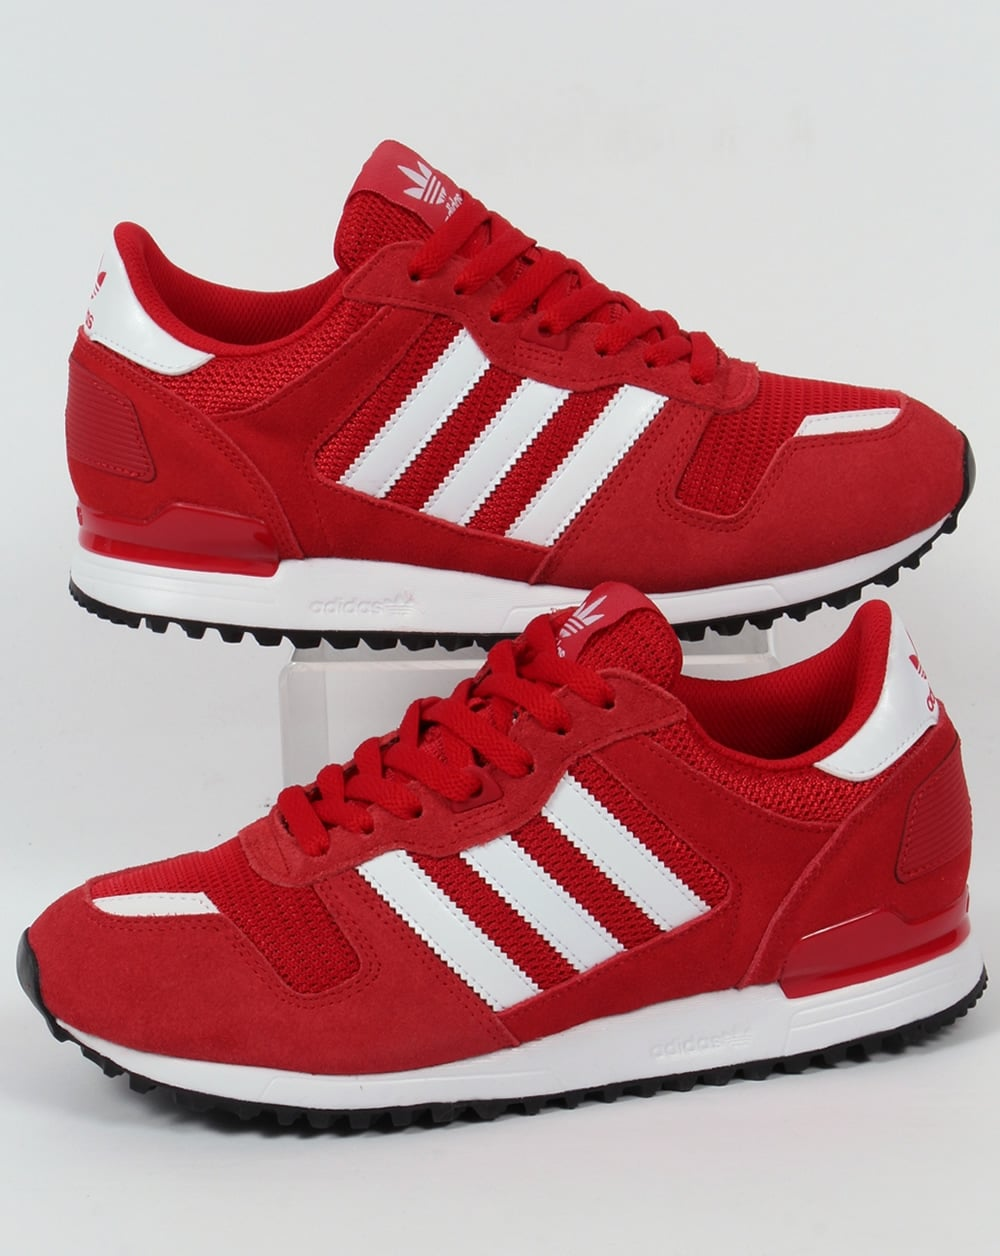 ... adidas zx 700 trainers red white p6268 50977_image